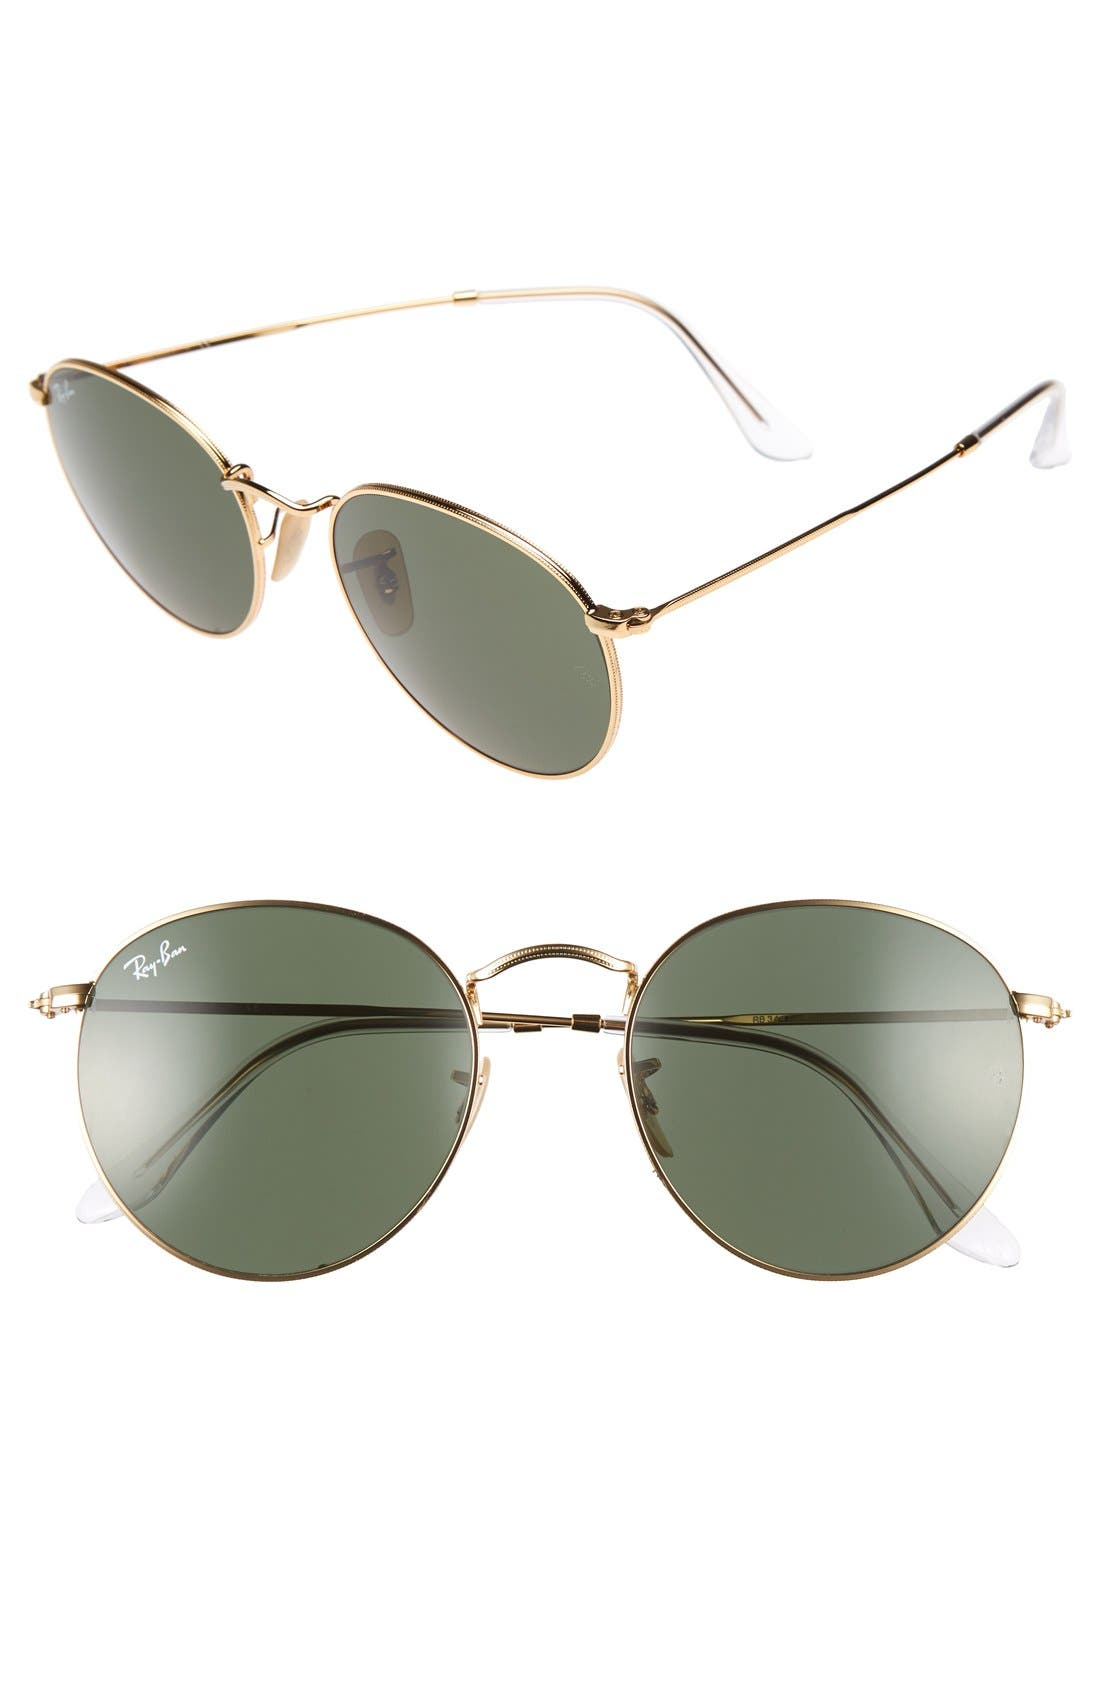 Ray-Ban Icons 5m Retro Sunglasses -